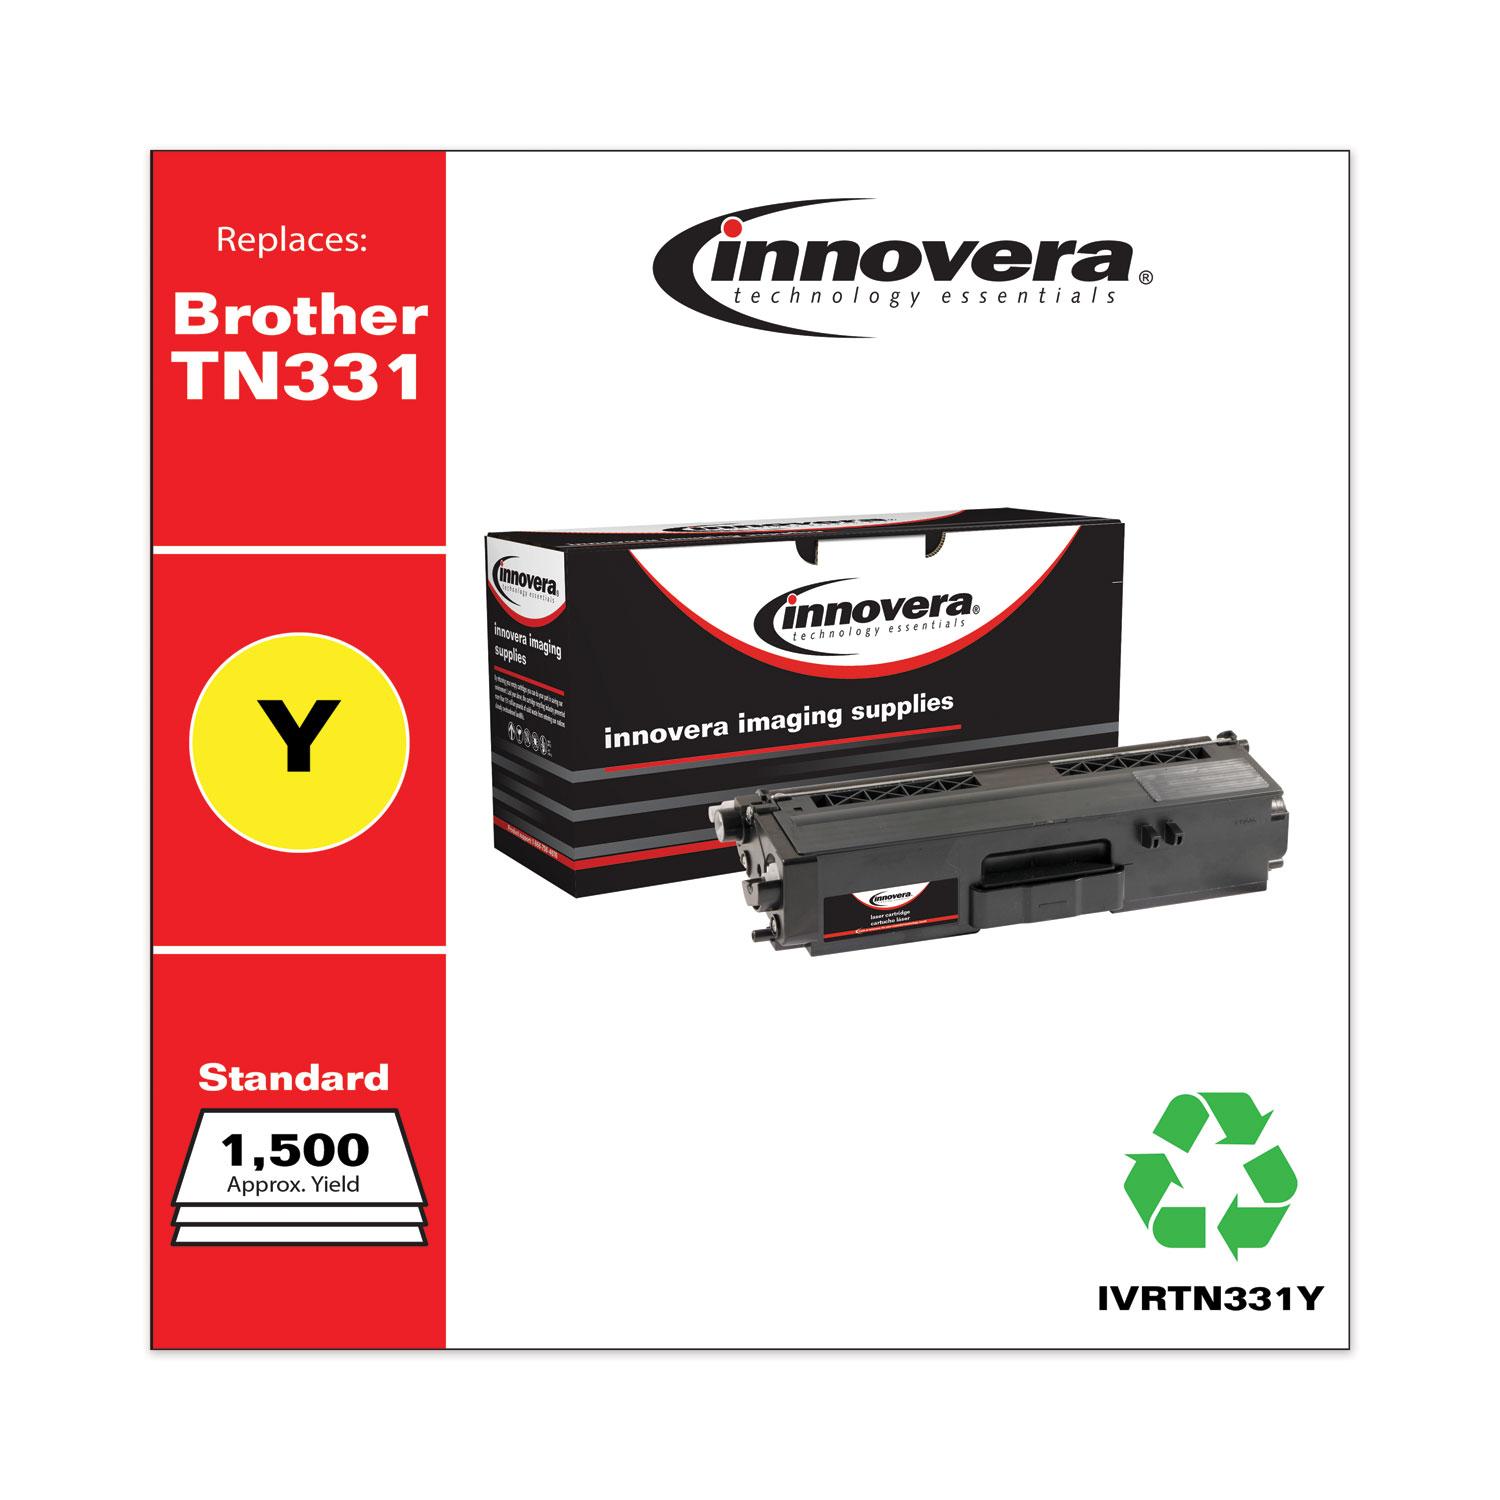 Remanufactured Yellow Toner, Replacement for Brother TN331Y, 1,500 Page-Yield IVRTN331Y